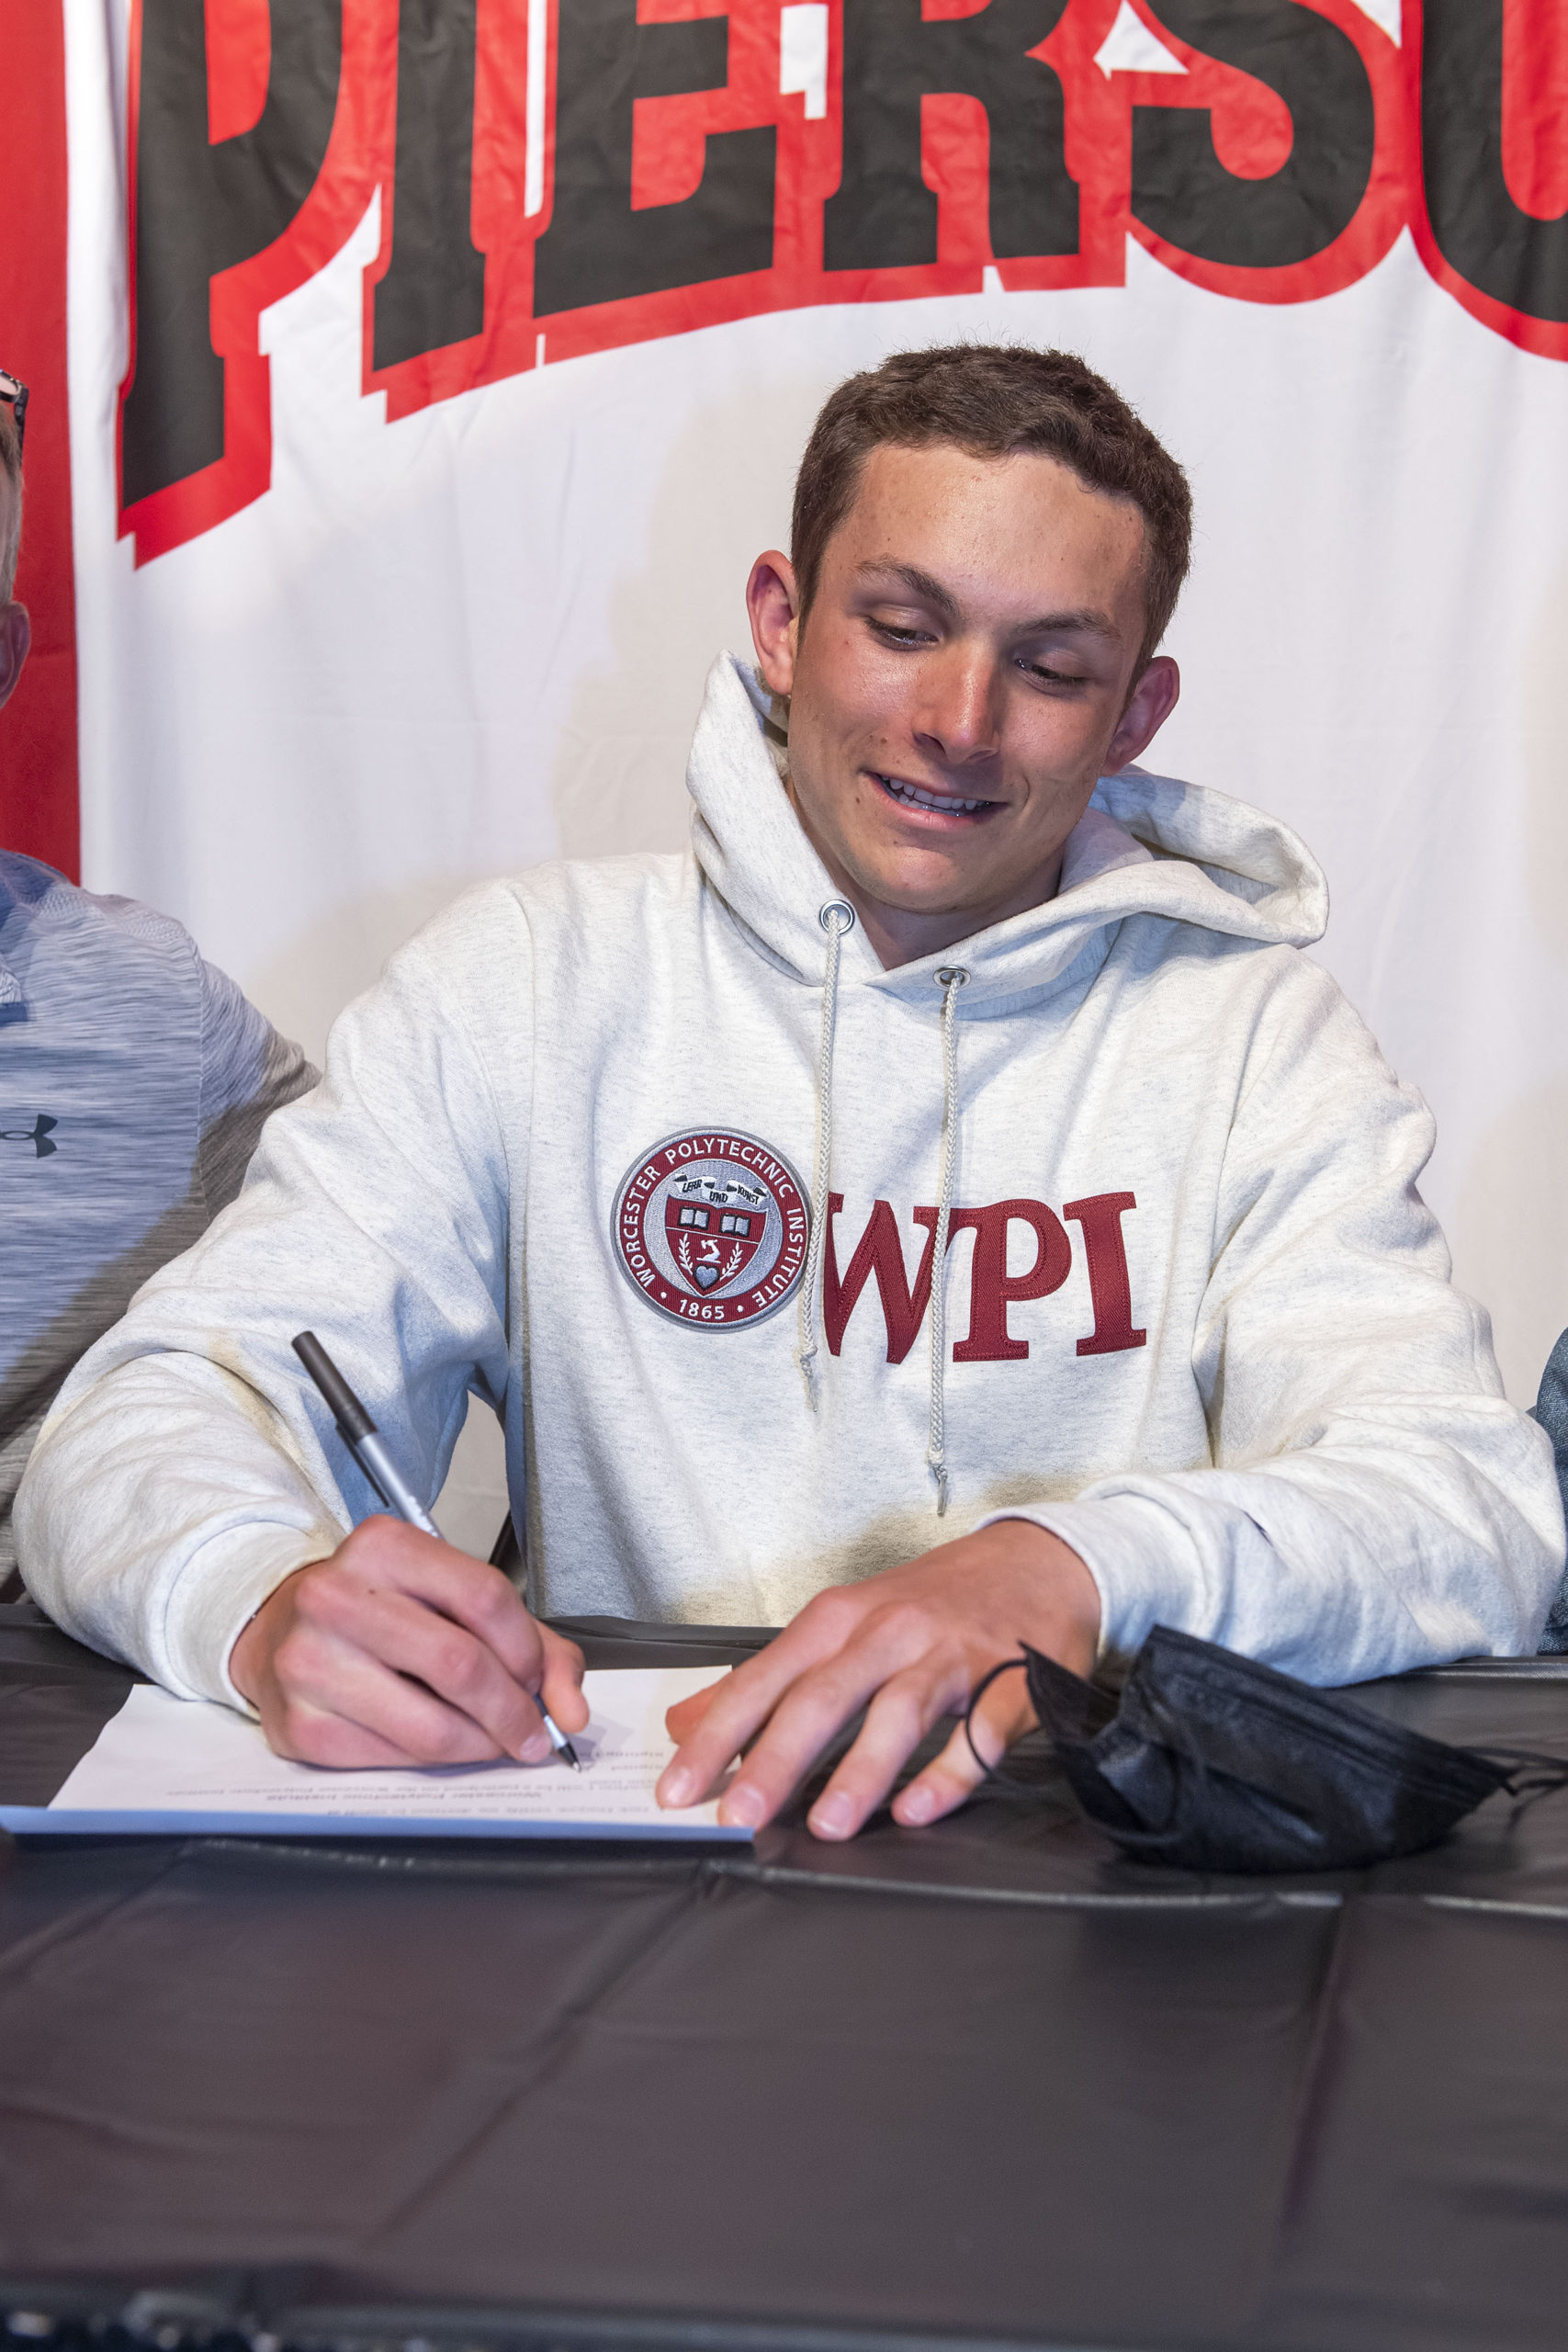 Pierson senior Jack Duryea signed his letter of intent to swim at Worcester Polytechnic Institute in early May.